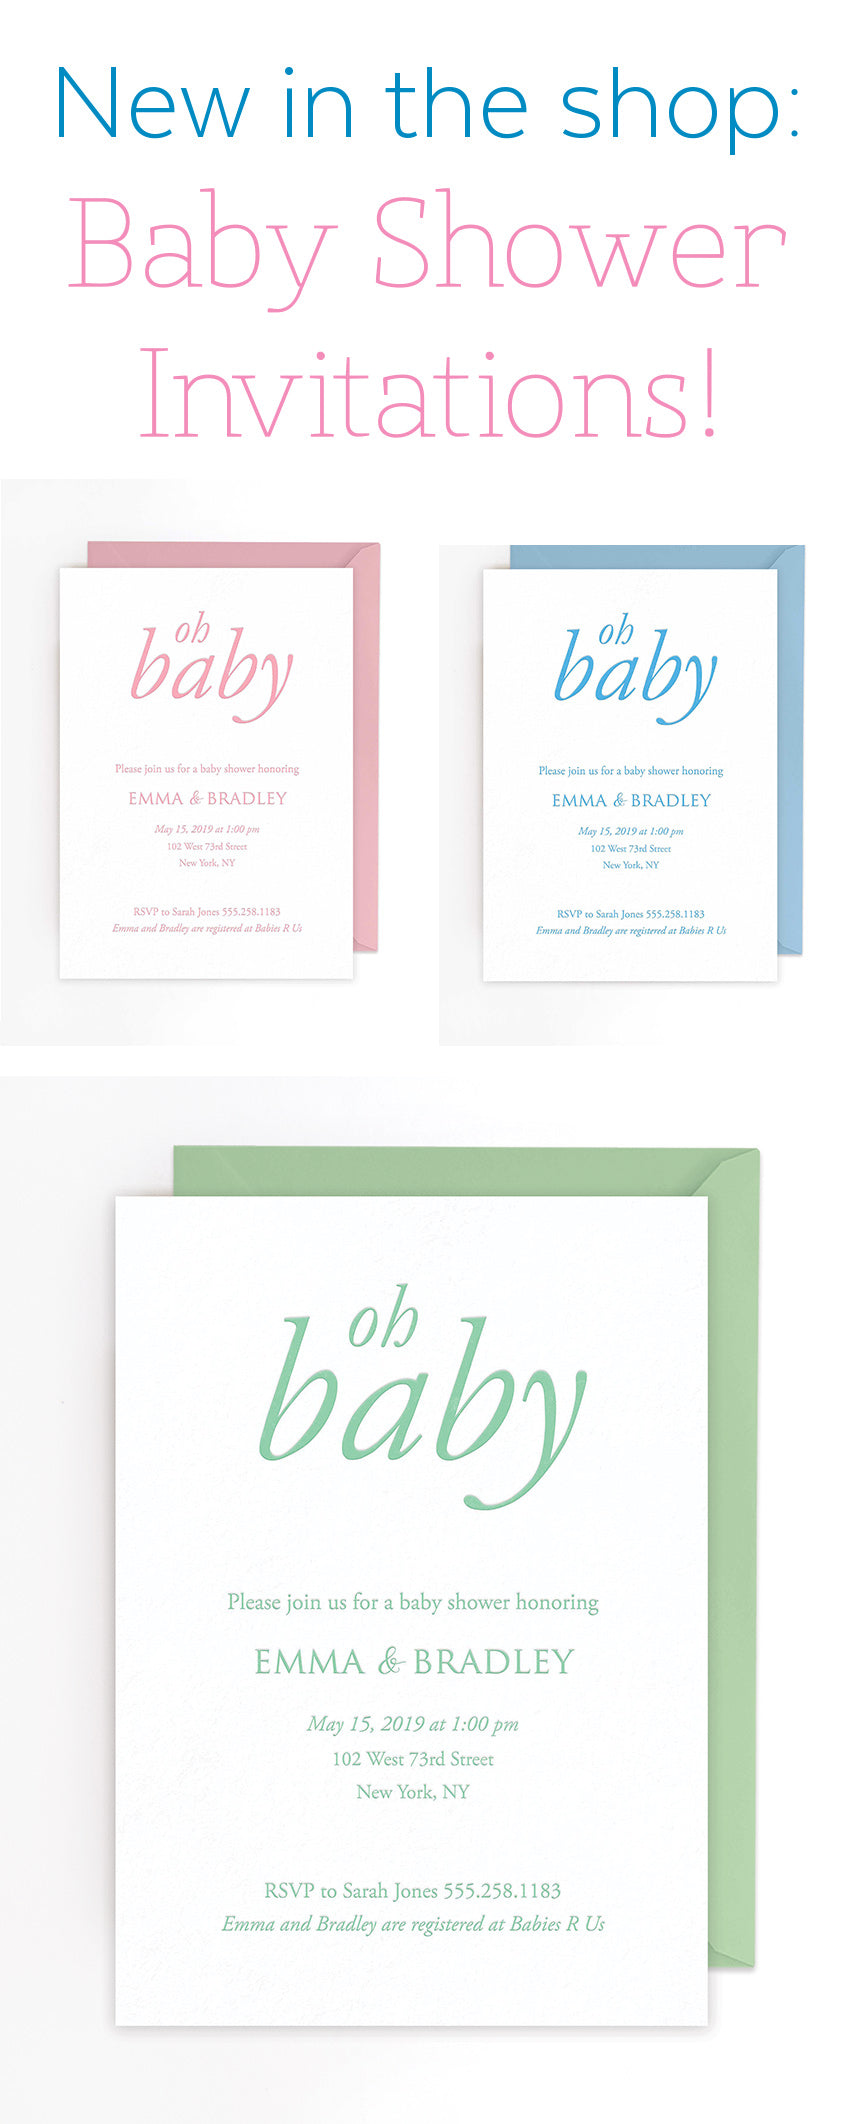 New in the Shop: Baby Shower Invitations